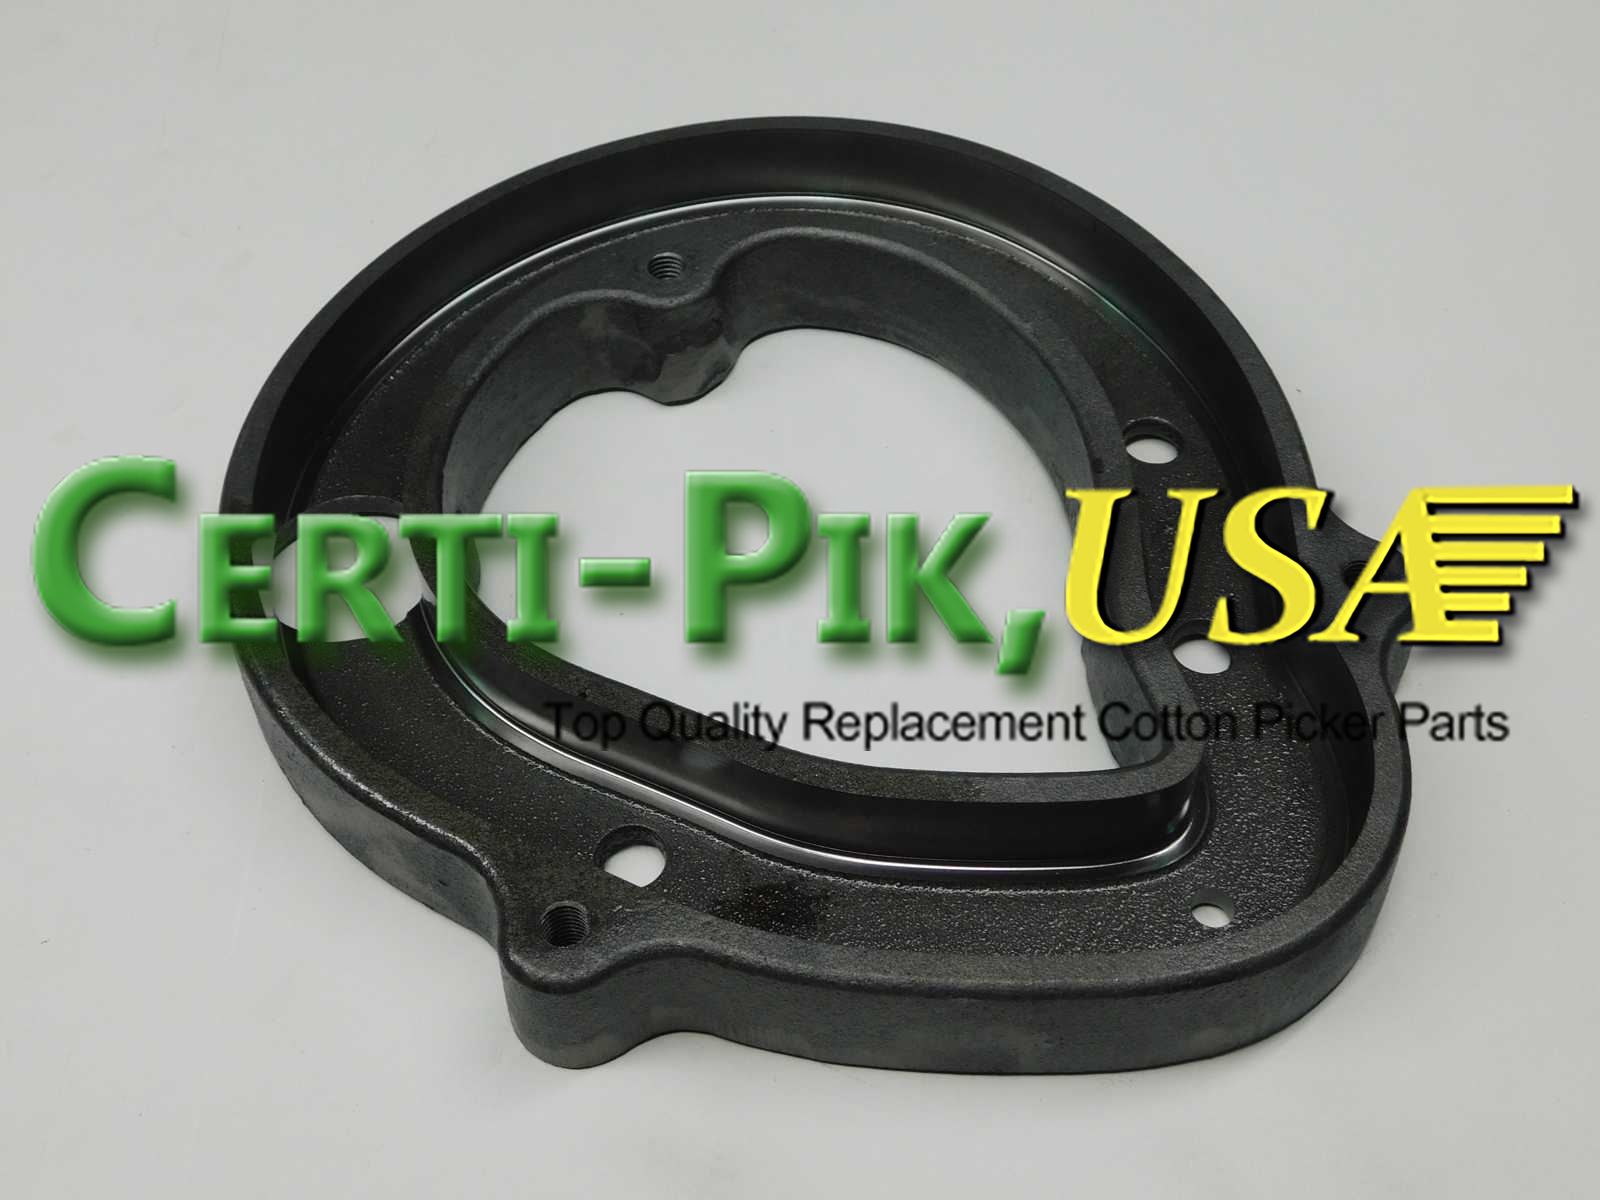 Picking Unit System: John Deere 9900-CP690 Cam Tracks and Drum Head N273012 (73012R) for Sale